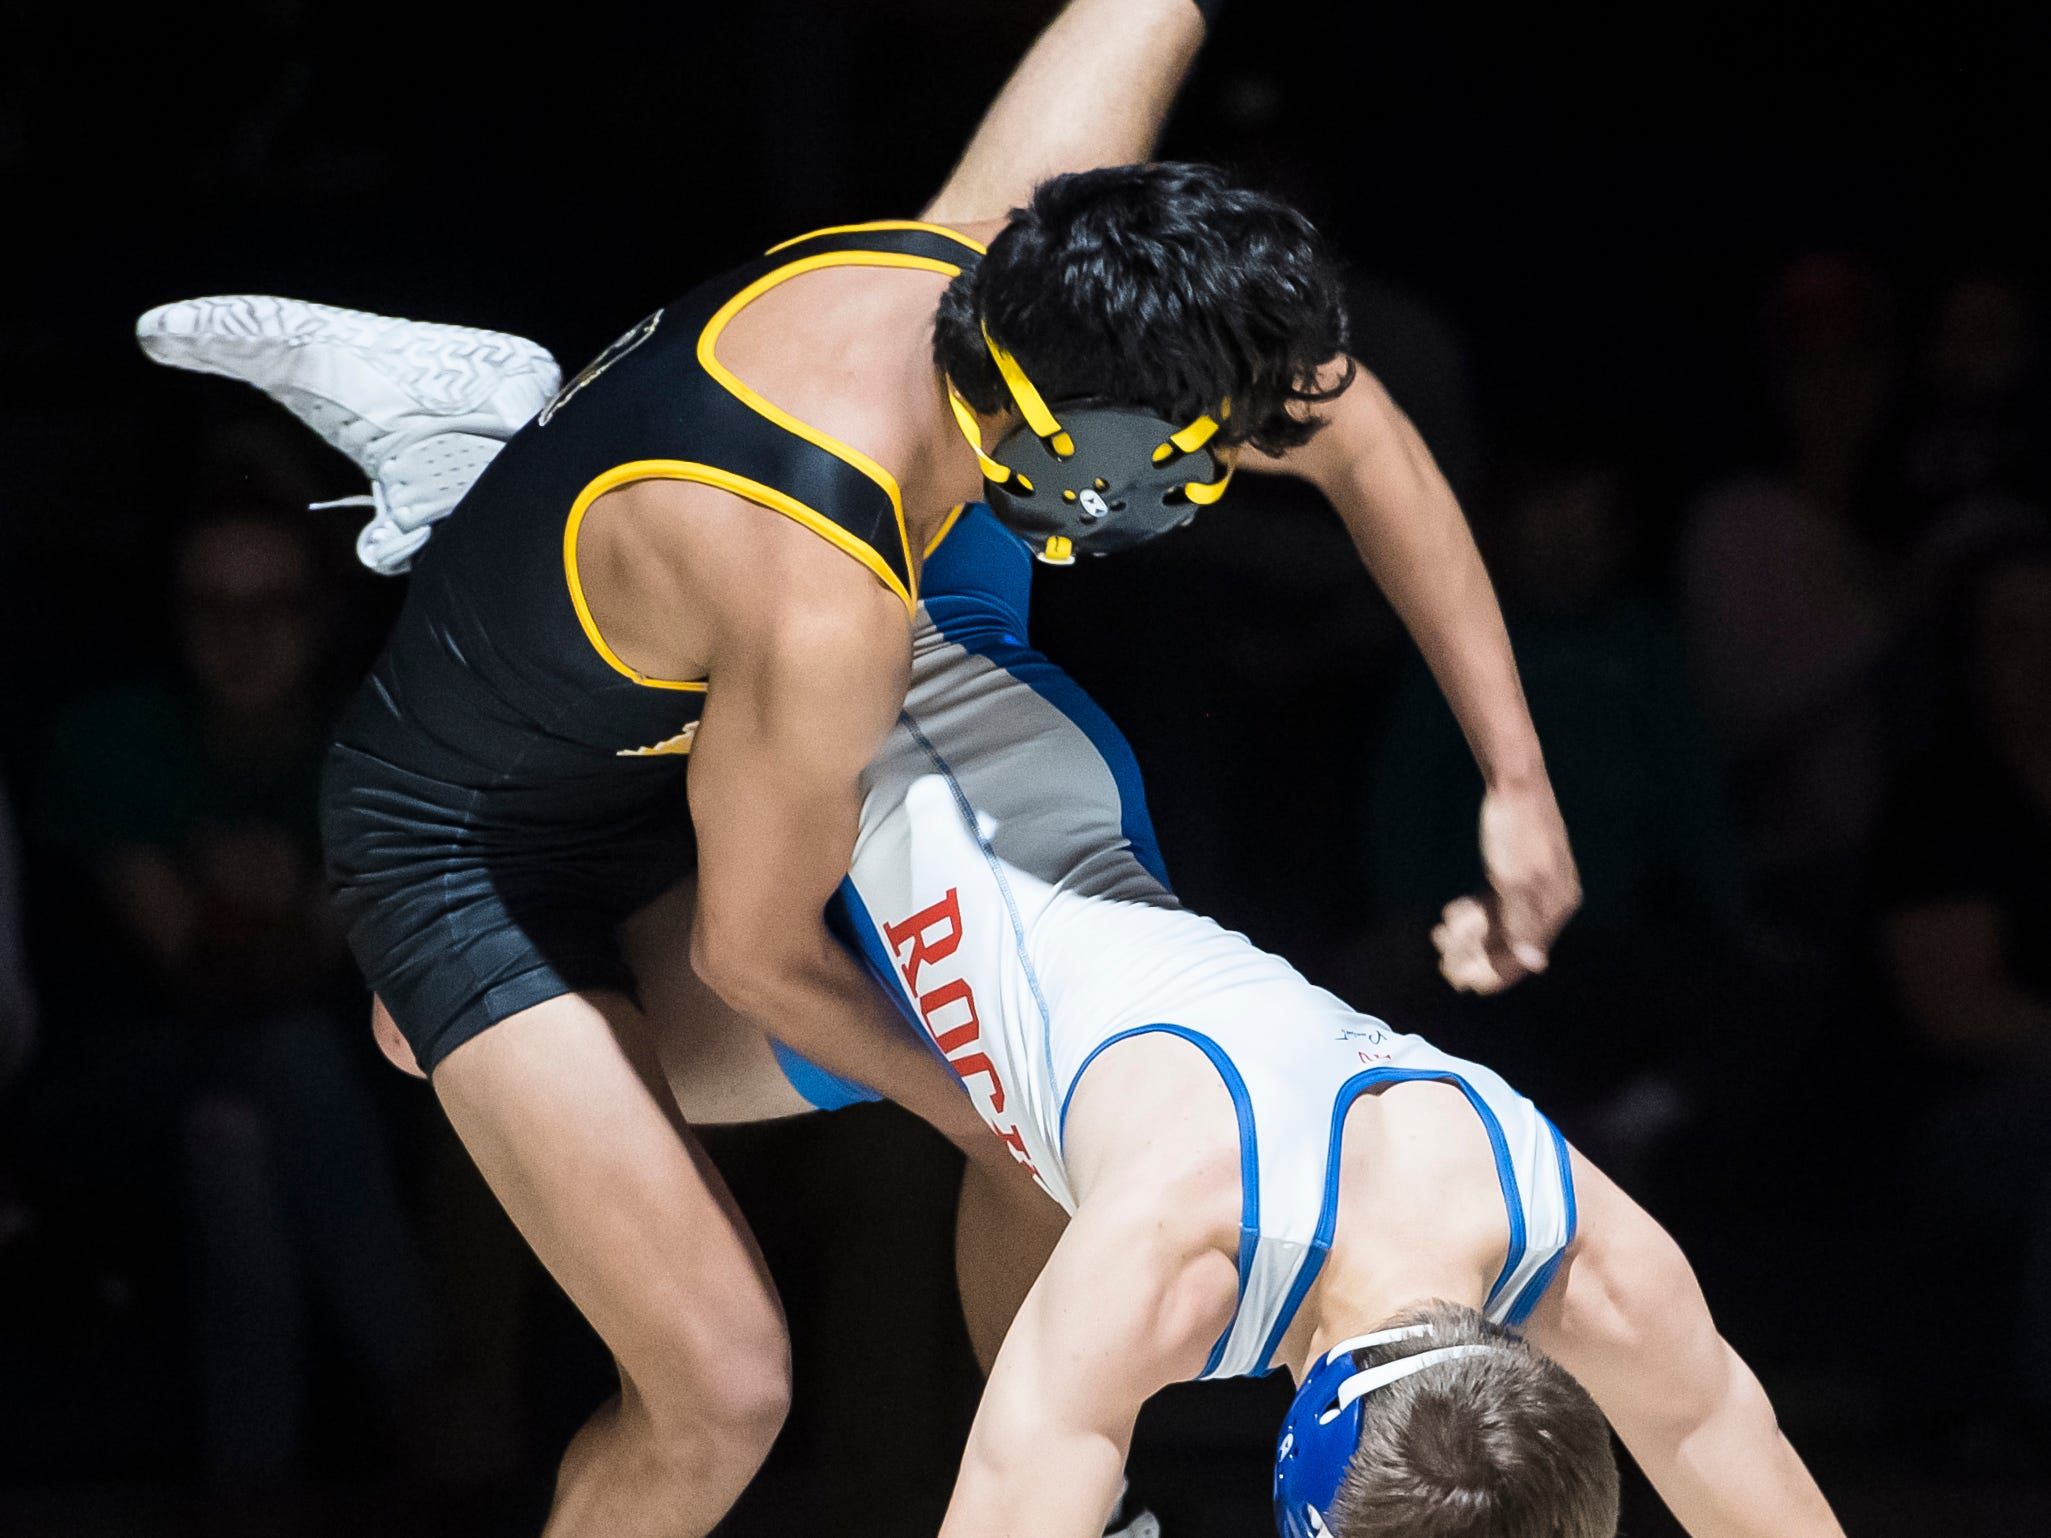 Spring Grove's Brayden Ross wrestles Red Lion's Caleb Strayer in the 126-pound bout at Spring Grove High School on Wednesday, December 12, 2018. The Rockets won the dual 68-9.